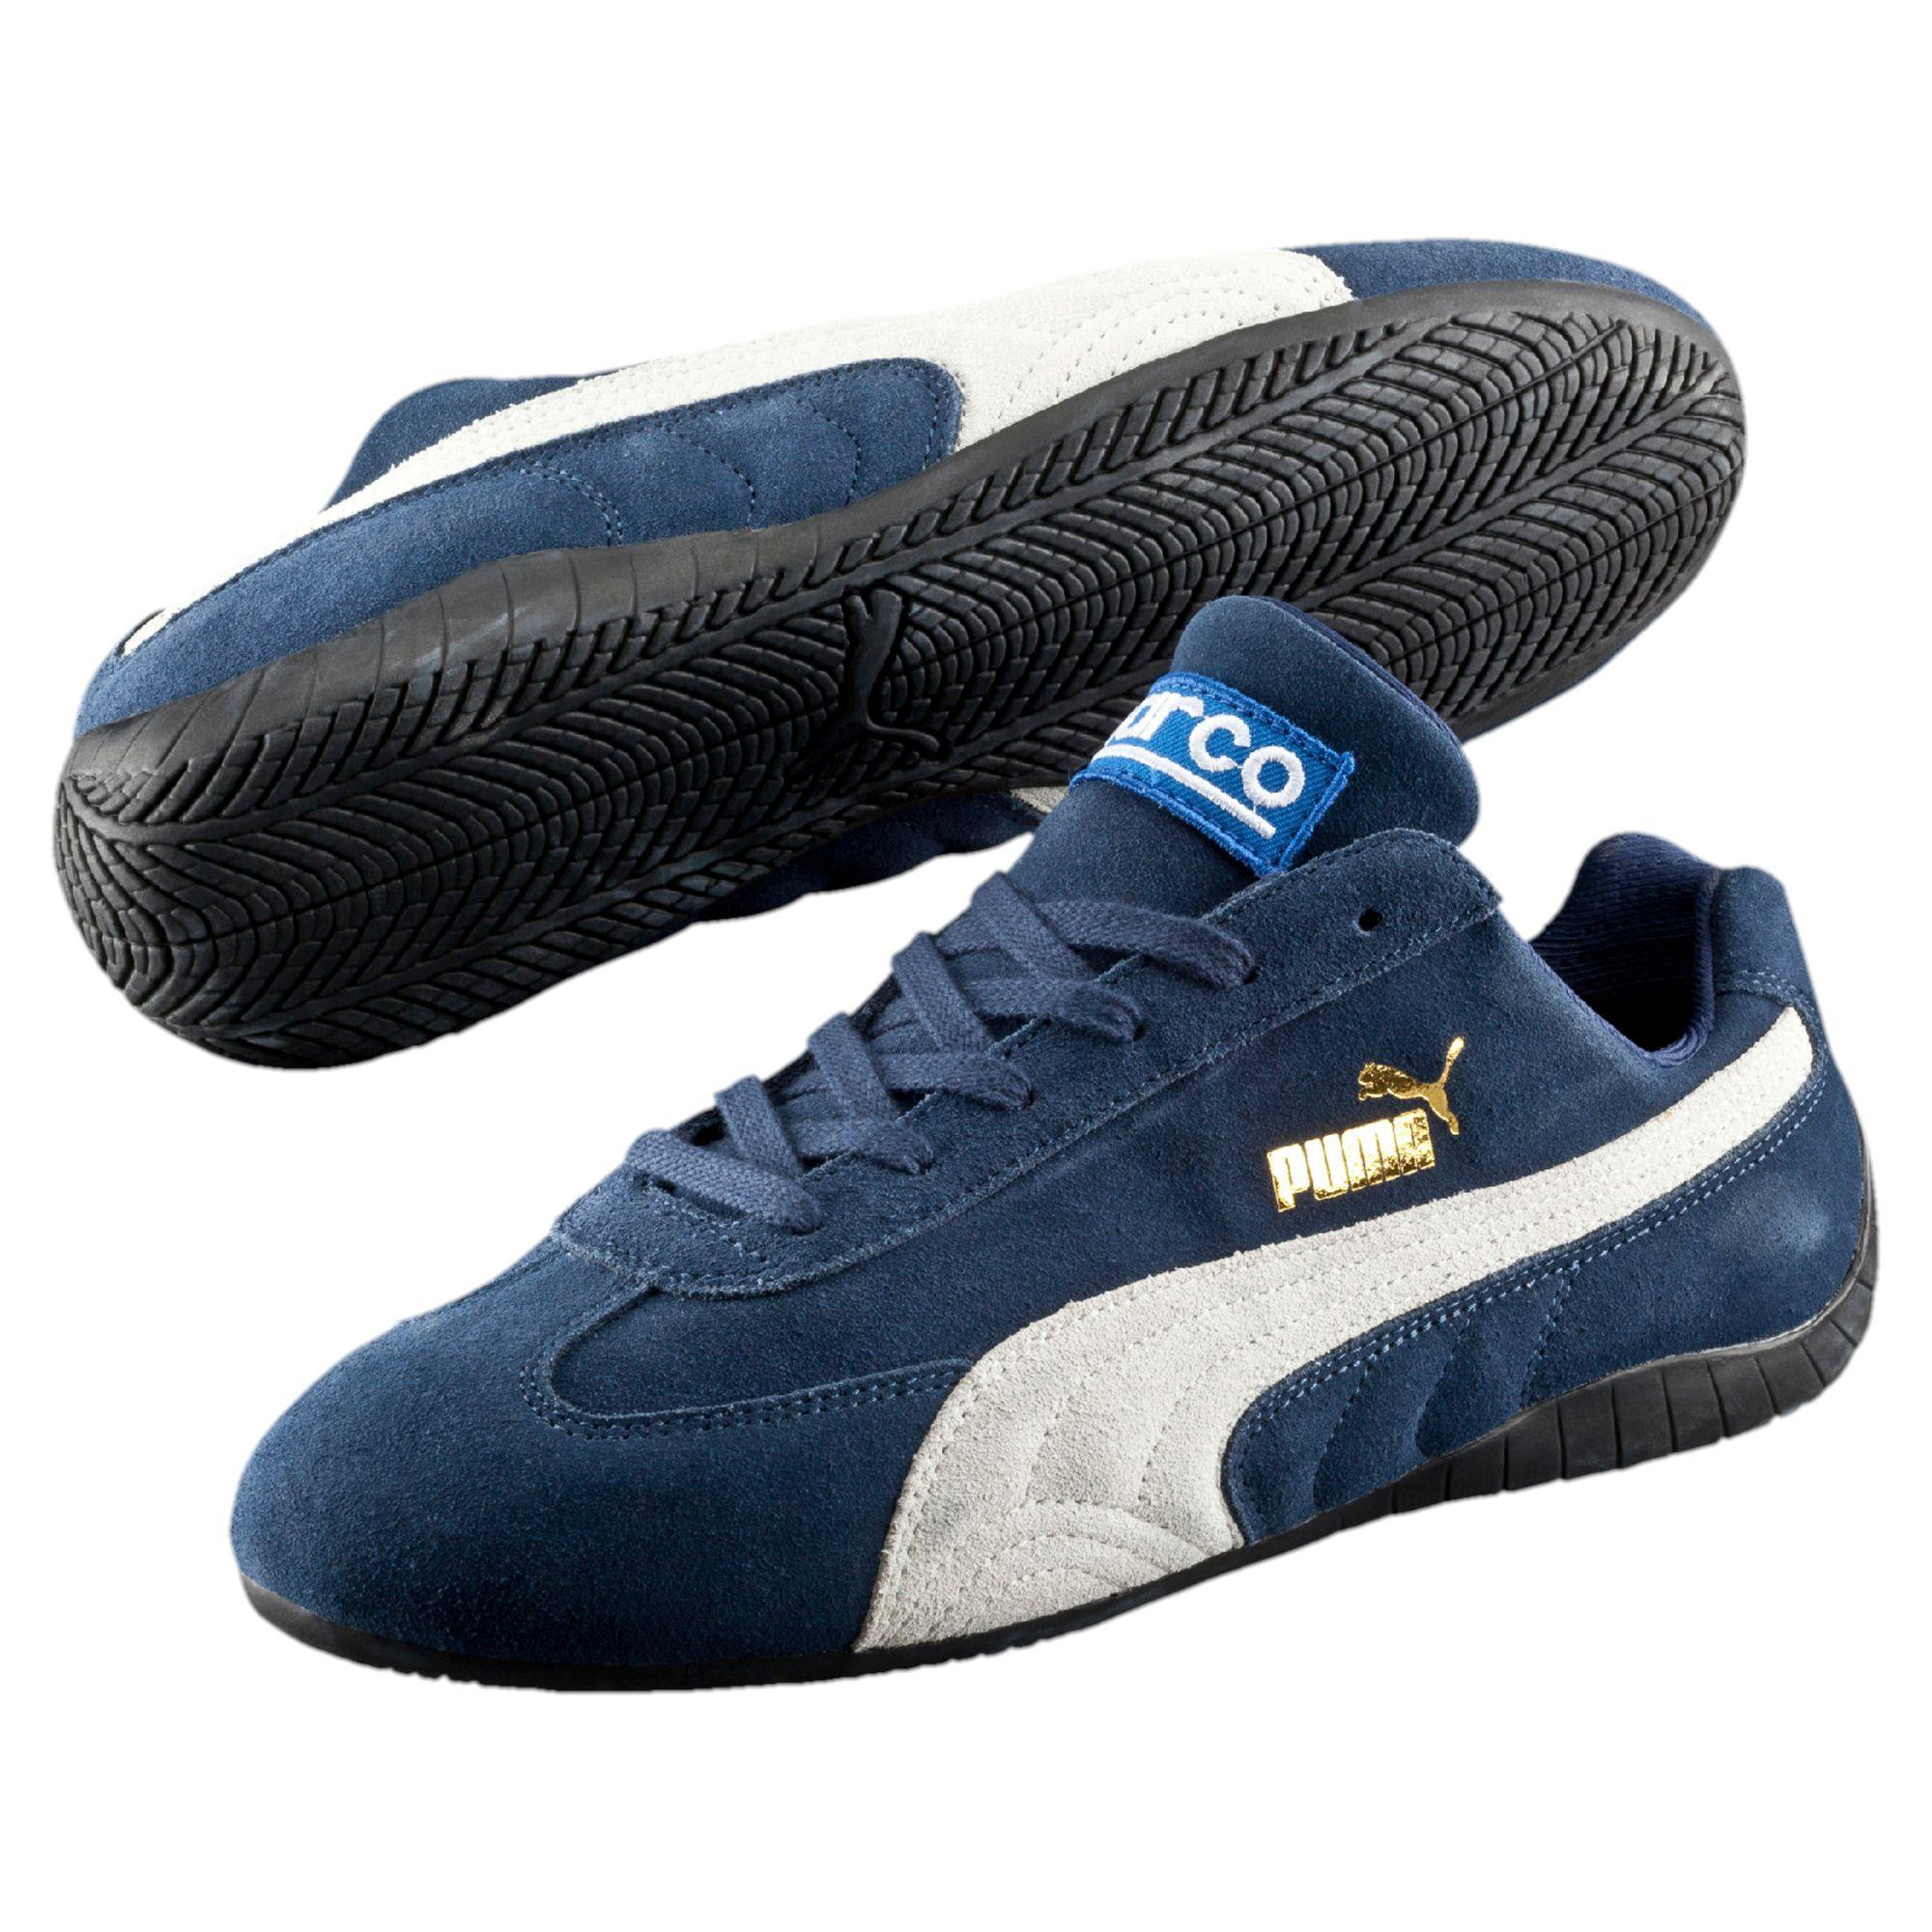 72b5022f5927 ... best price lyst puma speed cat sparco shoes in blue for men d48a9 c1472